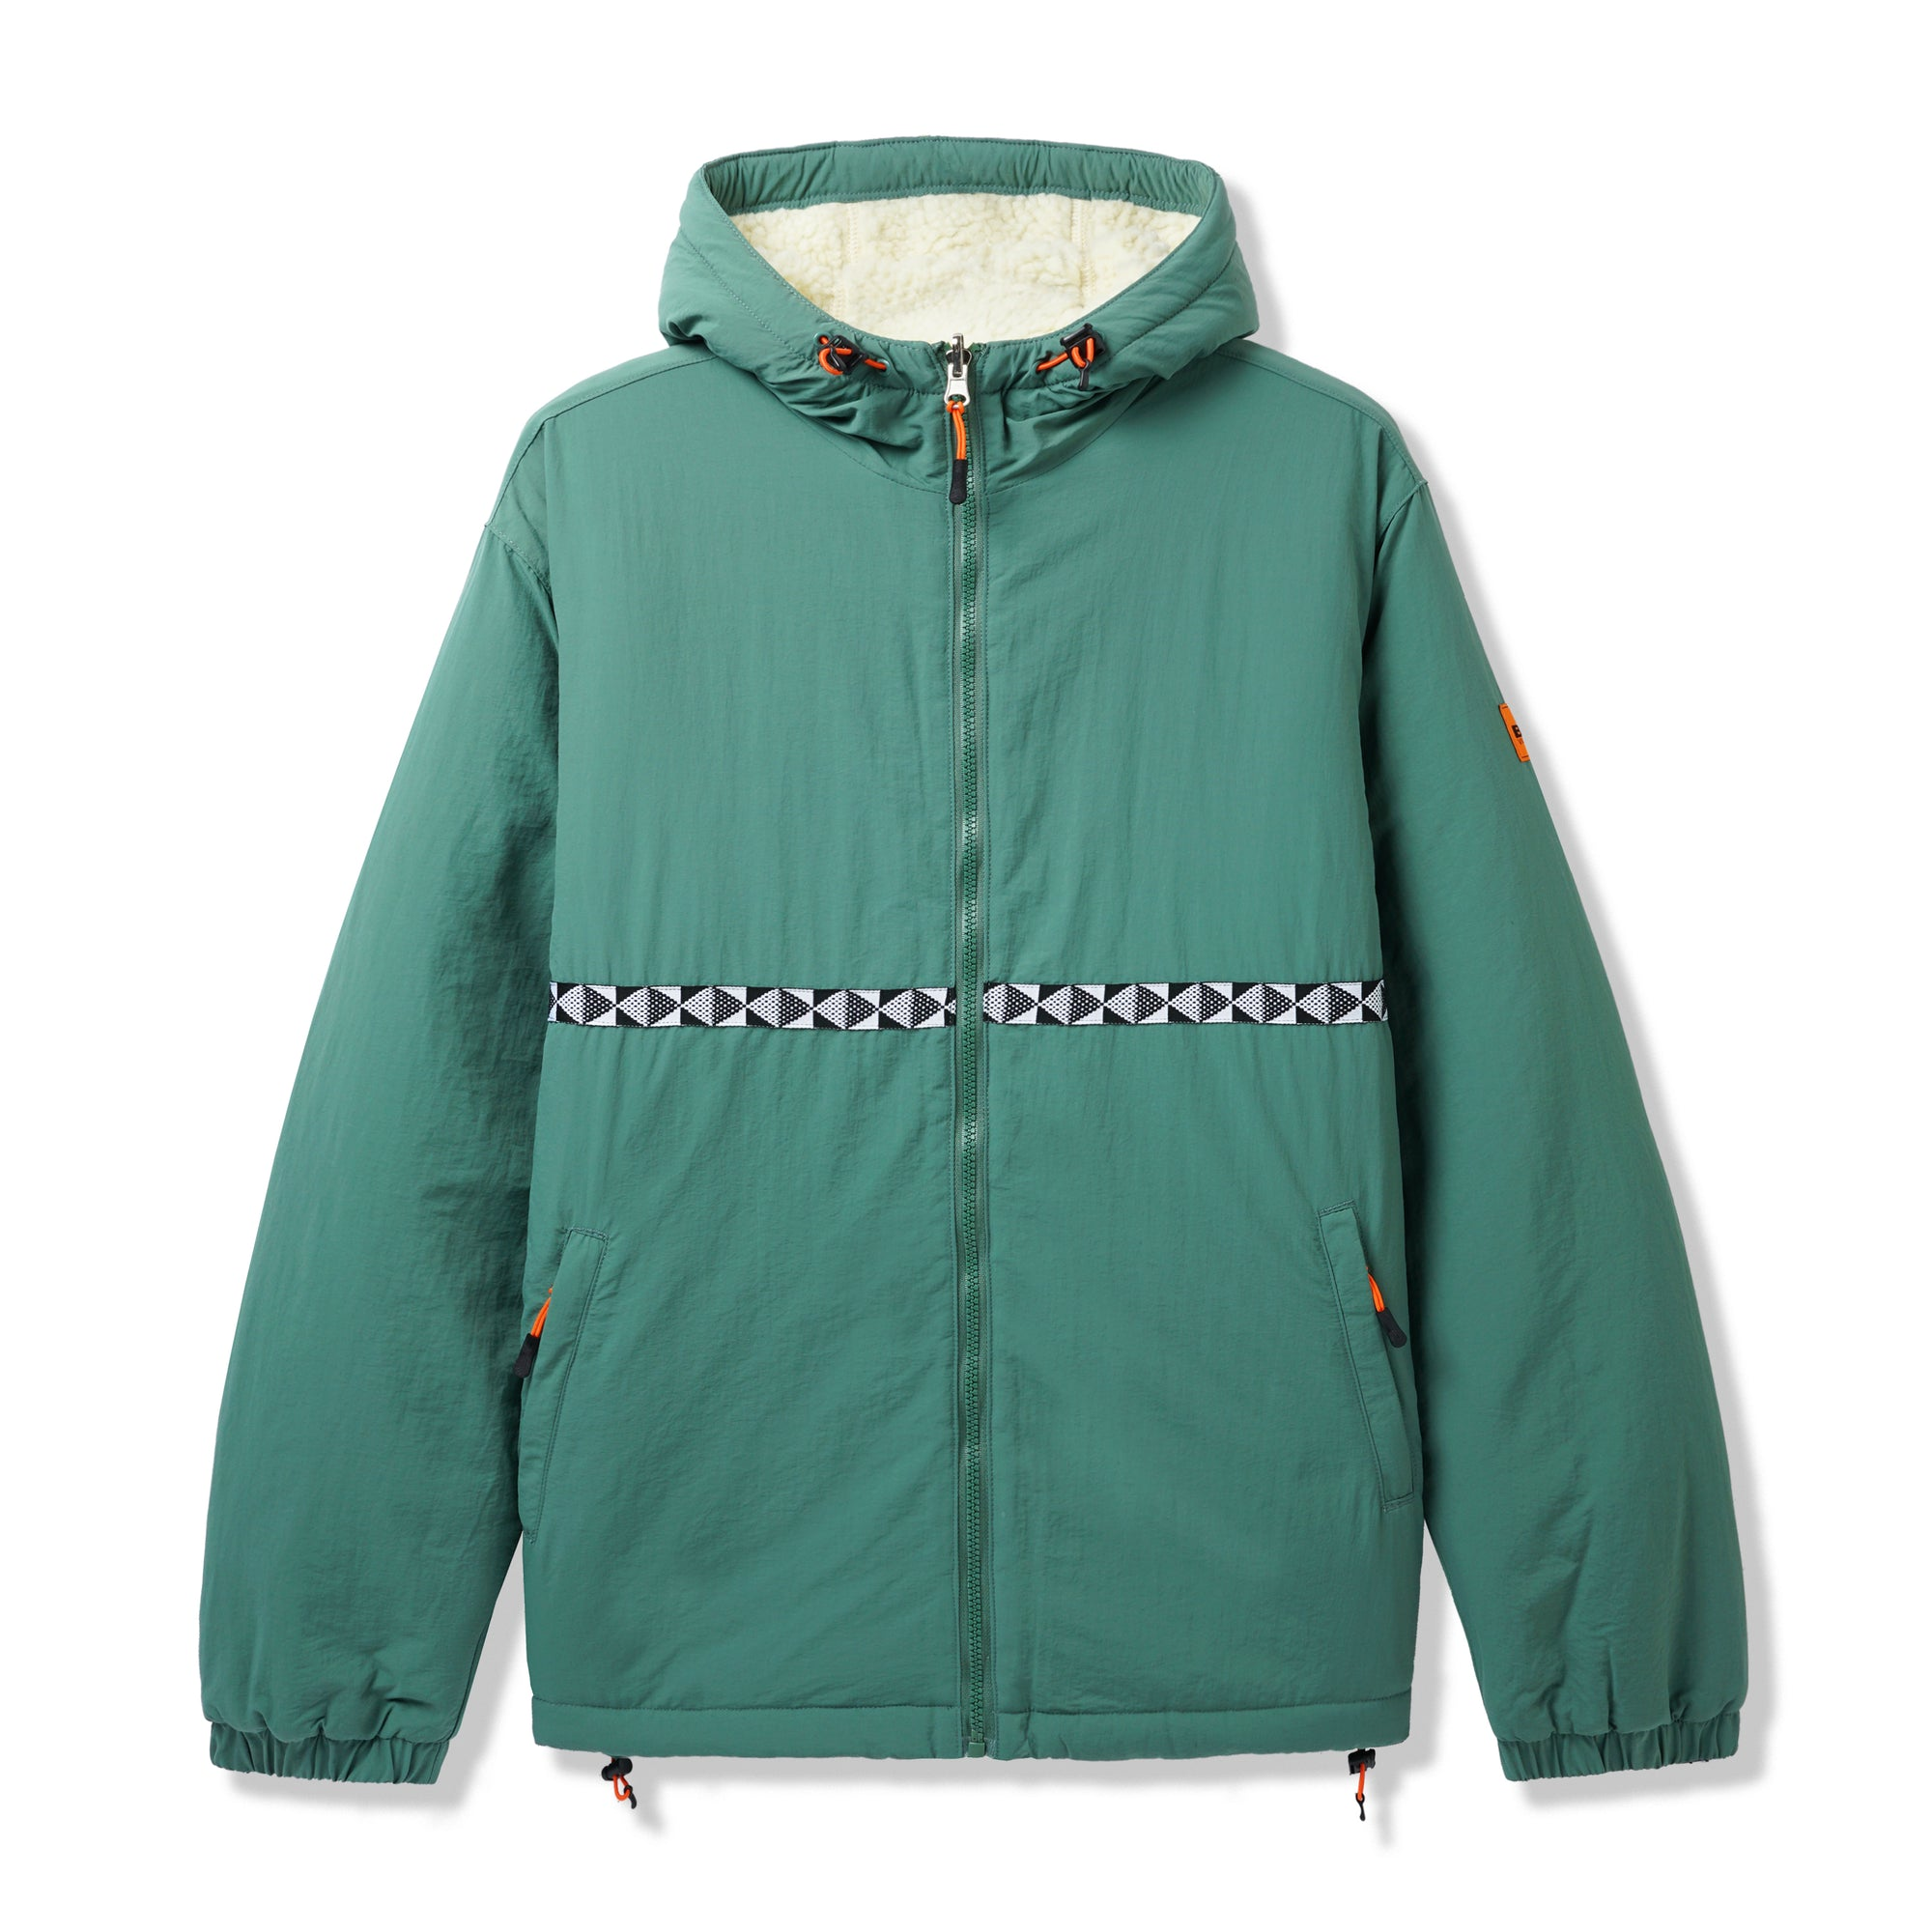 Butter Goods Base Camp Reversible Jacket Product Photo #1